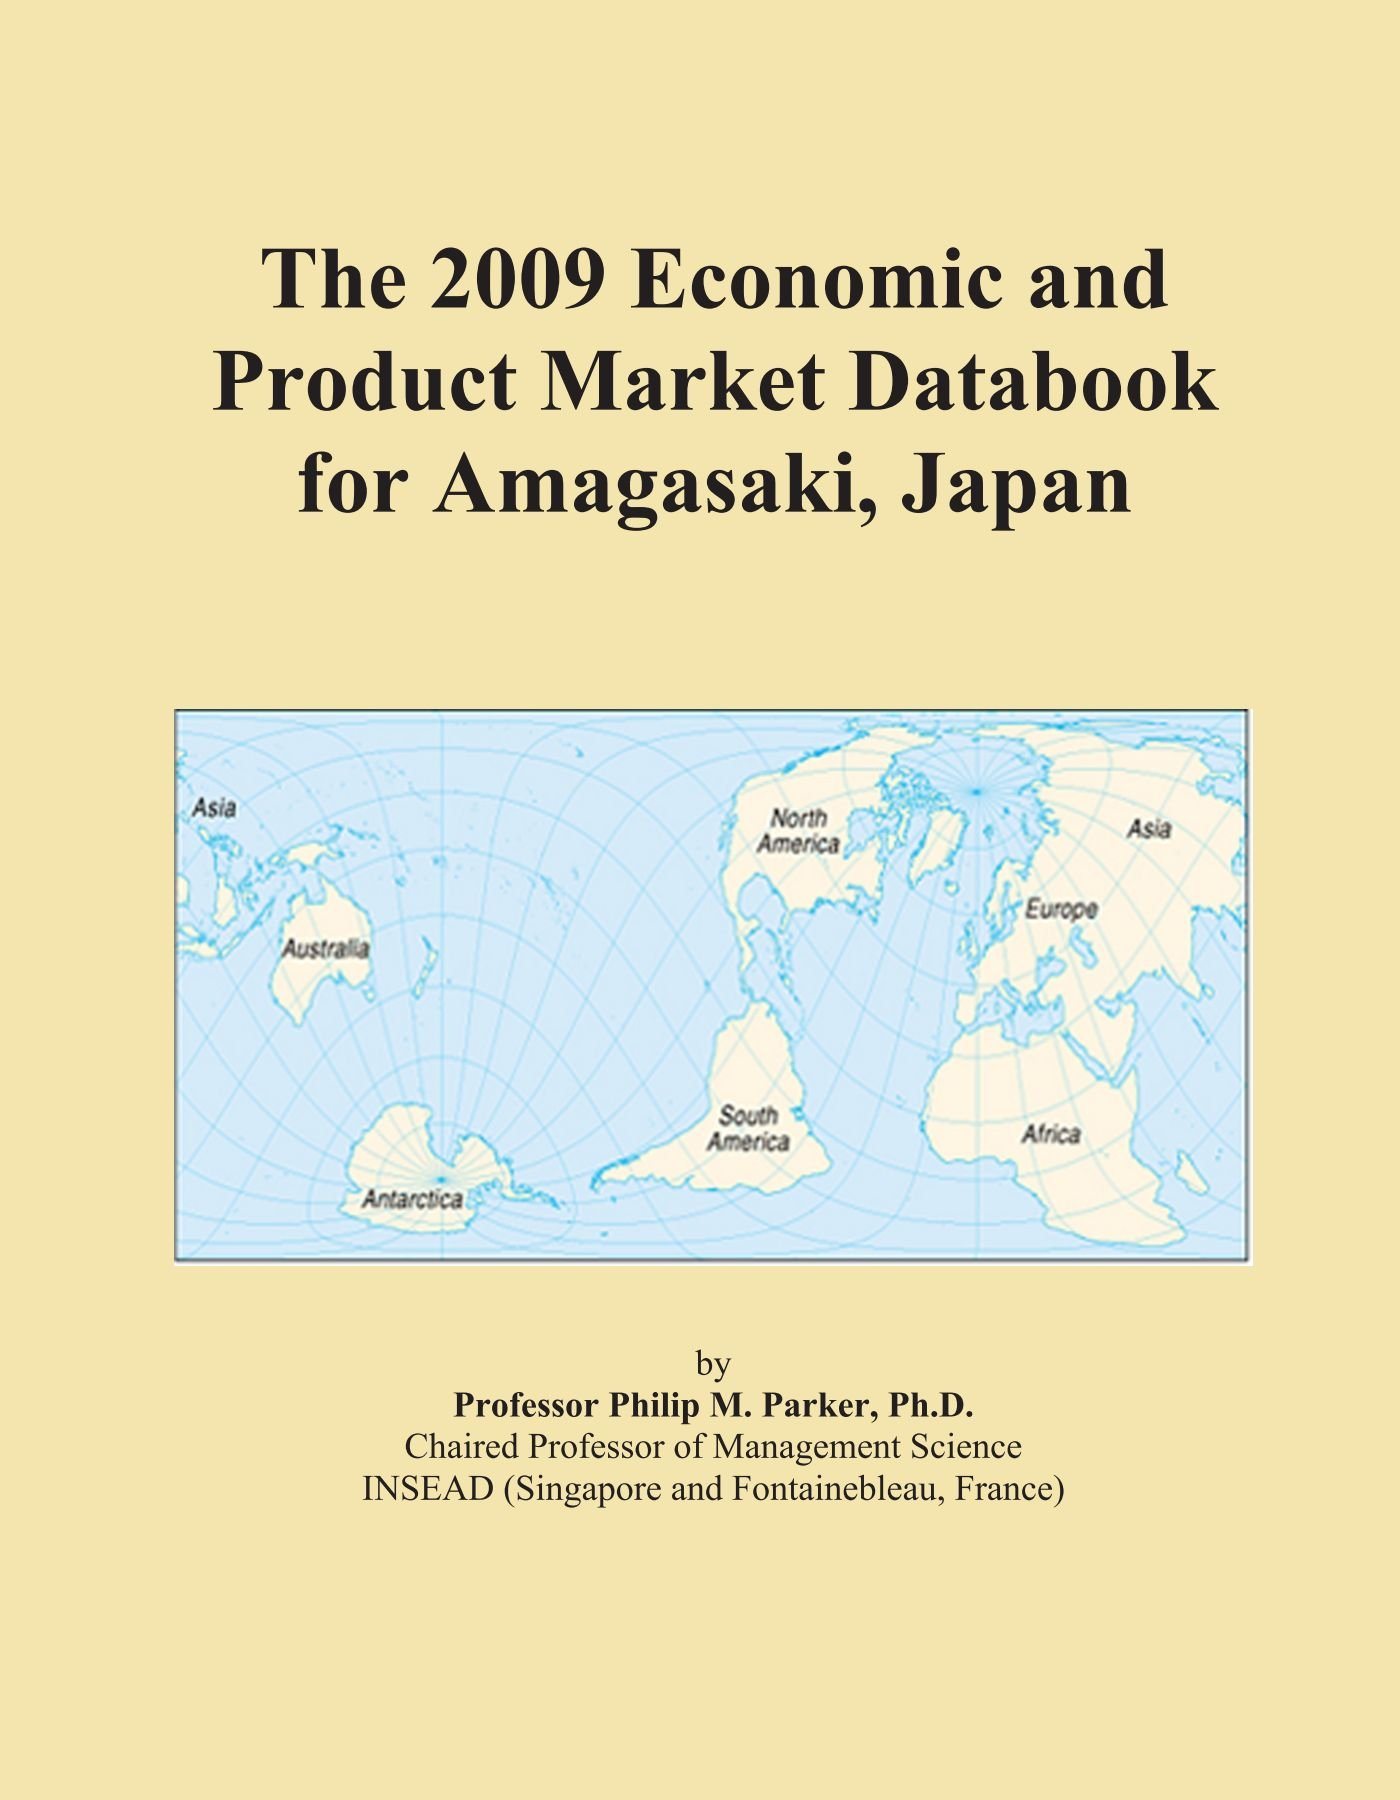 The 2009 Economic and Product Market Databook for Amagasaki, Japan PDF